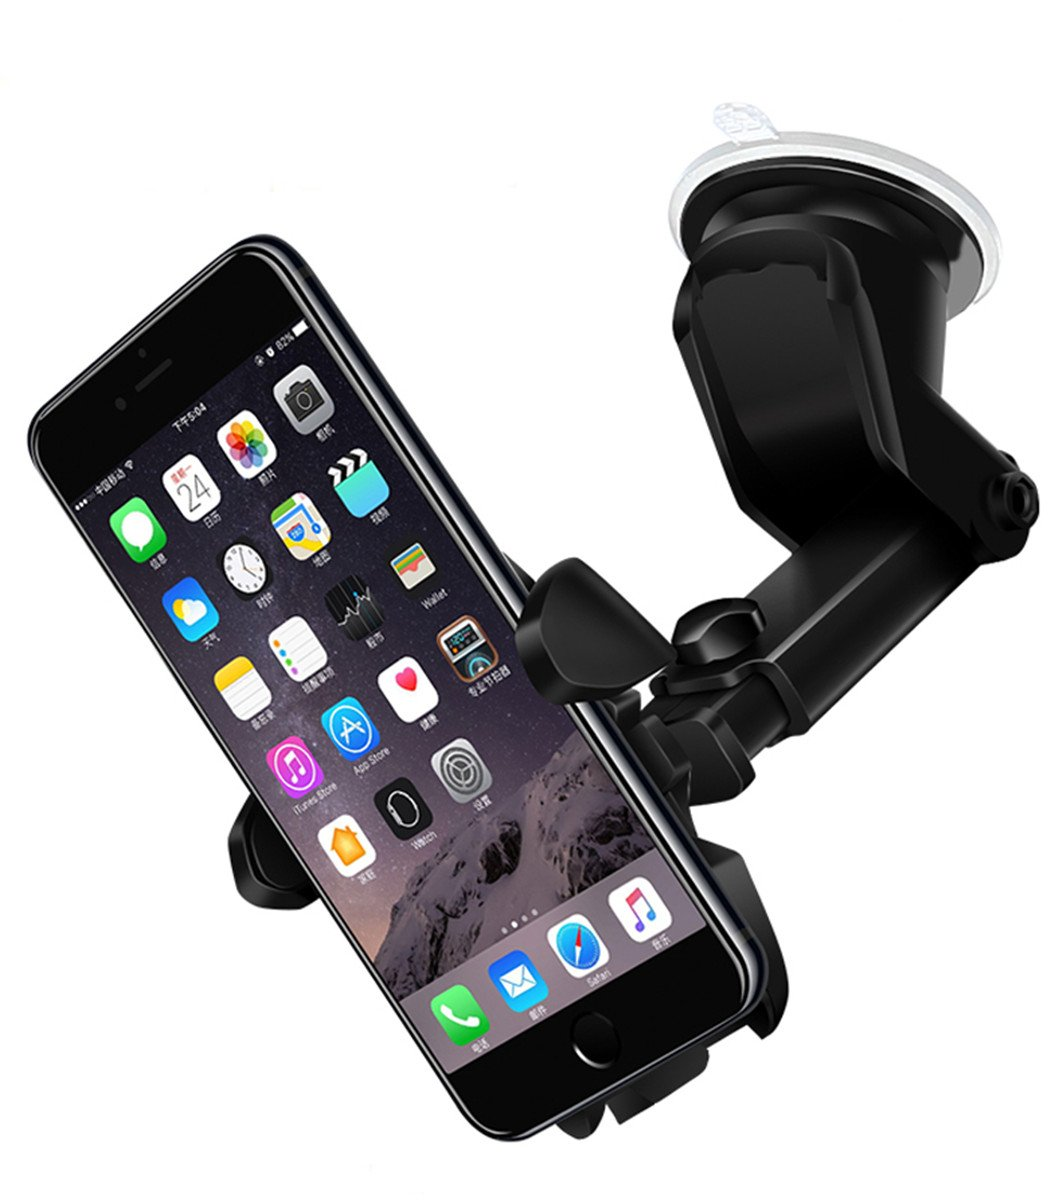 Stable Car Mount Phone Holder,Universal Windscreen Dashboard Mobile Phone Mount Car Cradle Suction Cup Adjustable Long Telescopic Arm with Auto Release for iPhone 7 Plus/7/6S Plus/6Plus/6S/6/5,Samsung Galaxy S8 S7 S6 Note 5/4/3 HTC, Nokia,